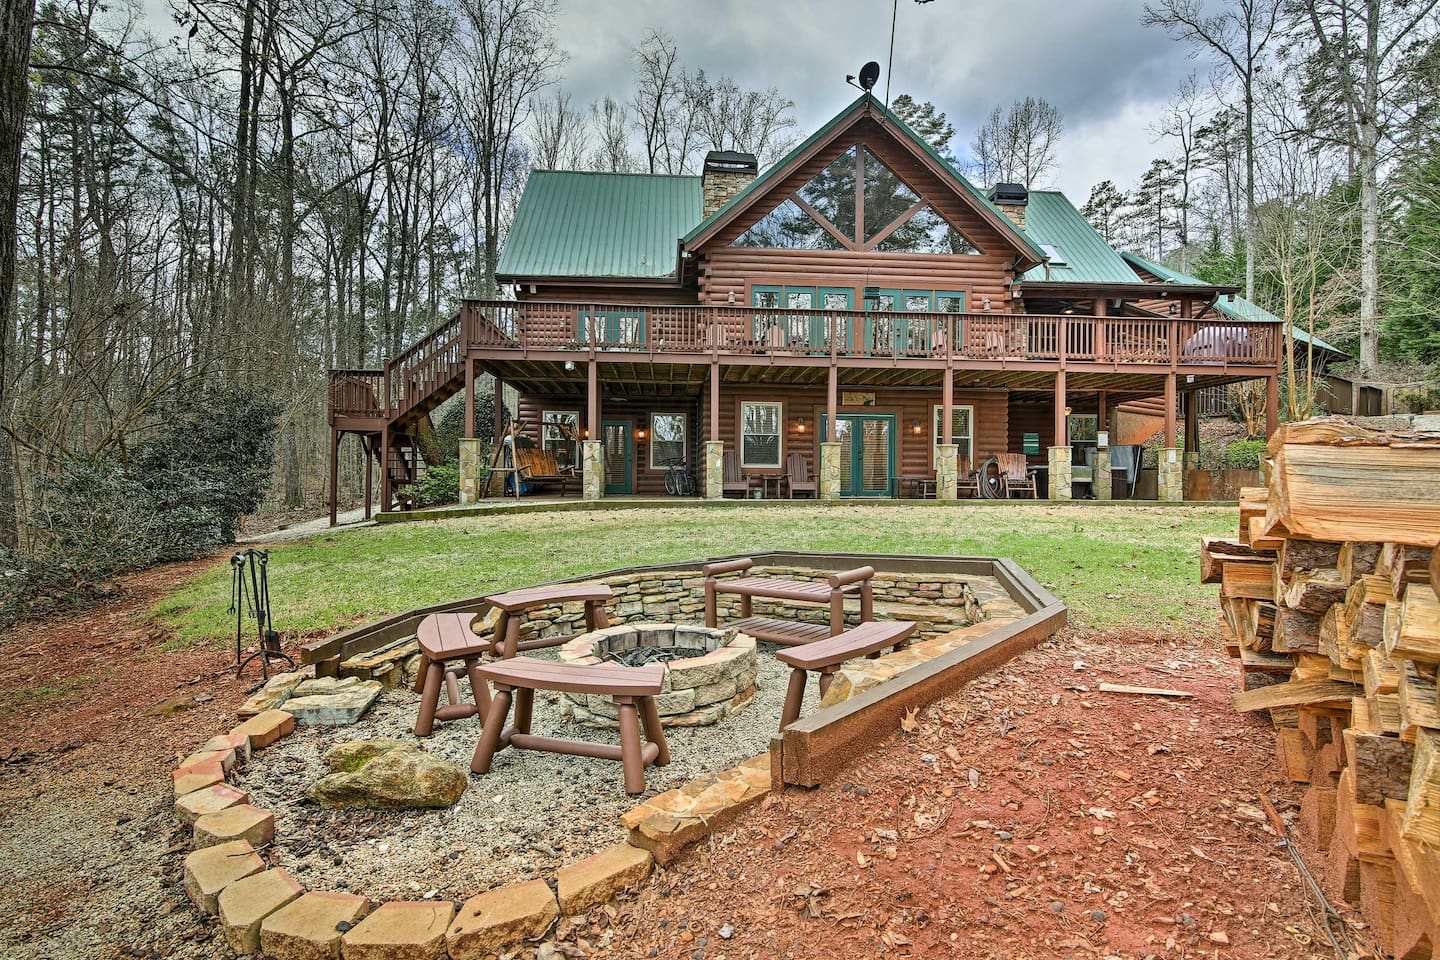 Pencil in a stay at this incredible Lake Hartwell custom-built cabin!